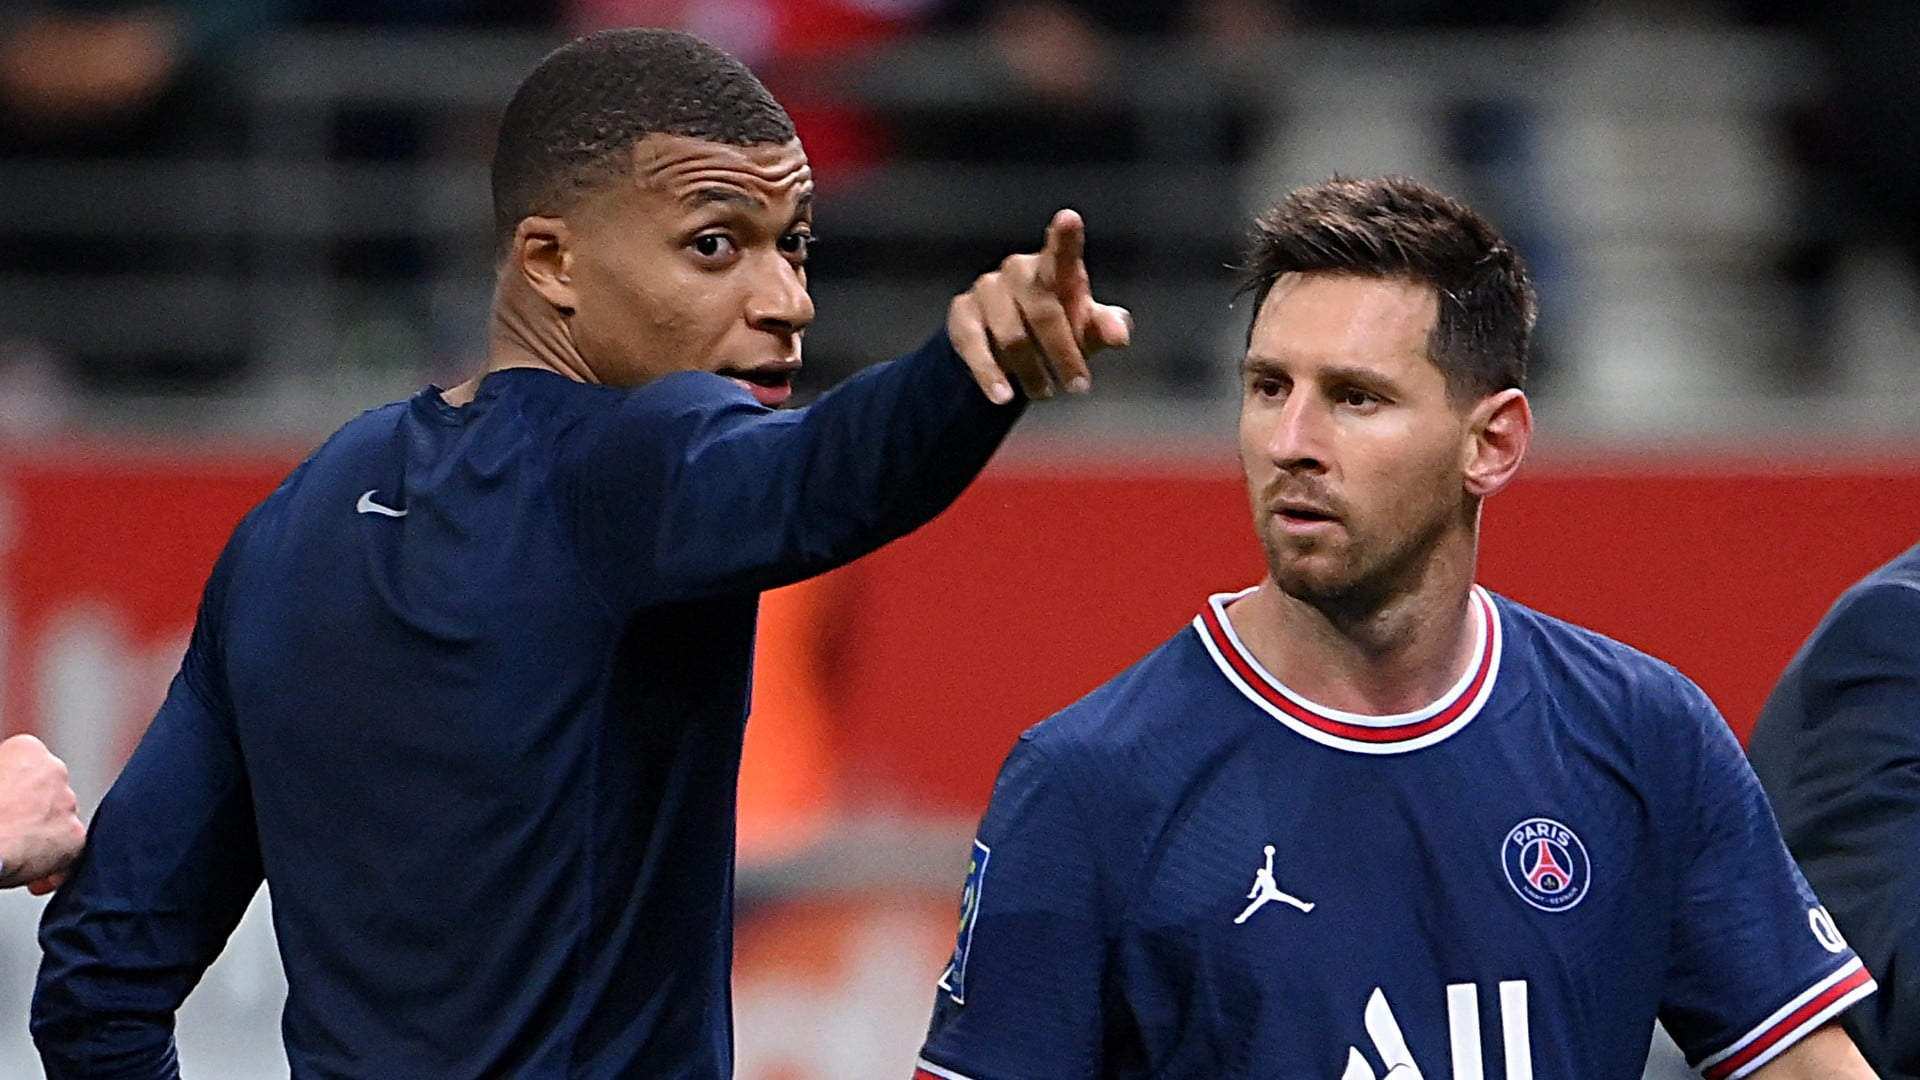 Mbappe Must Not Leave PSG -Messi